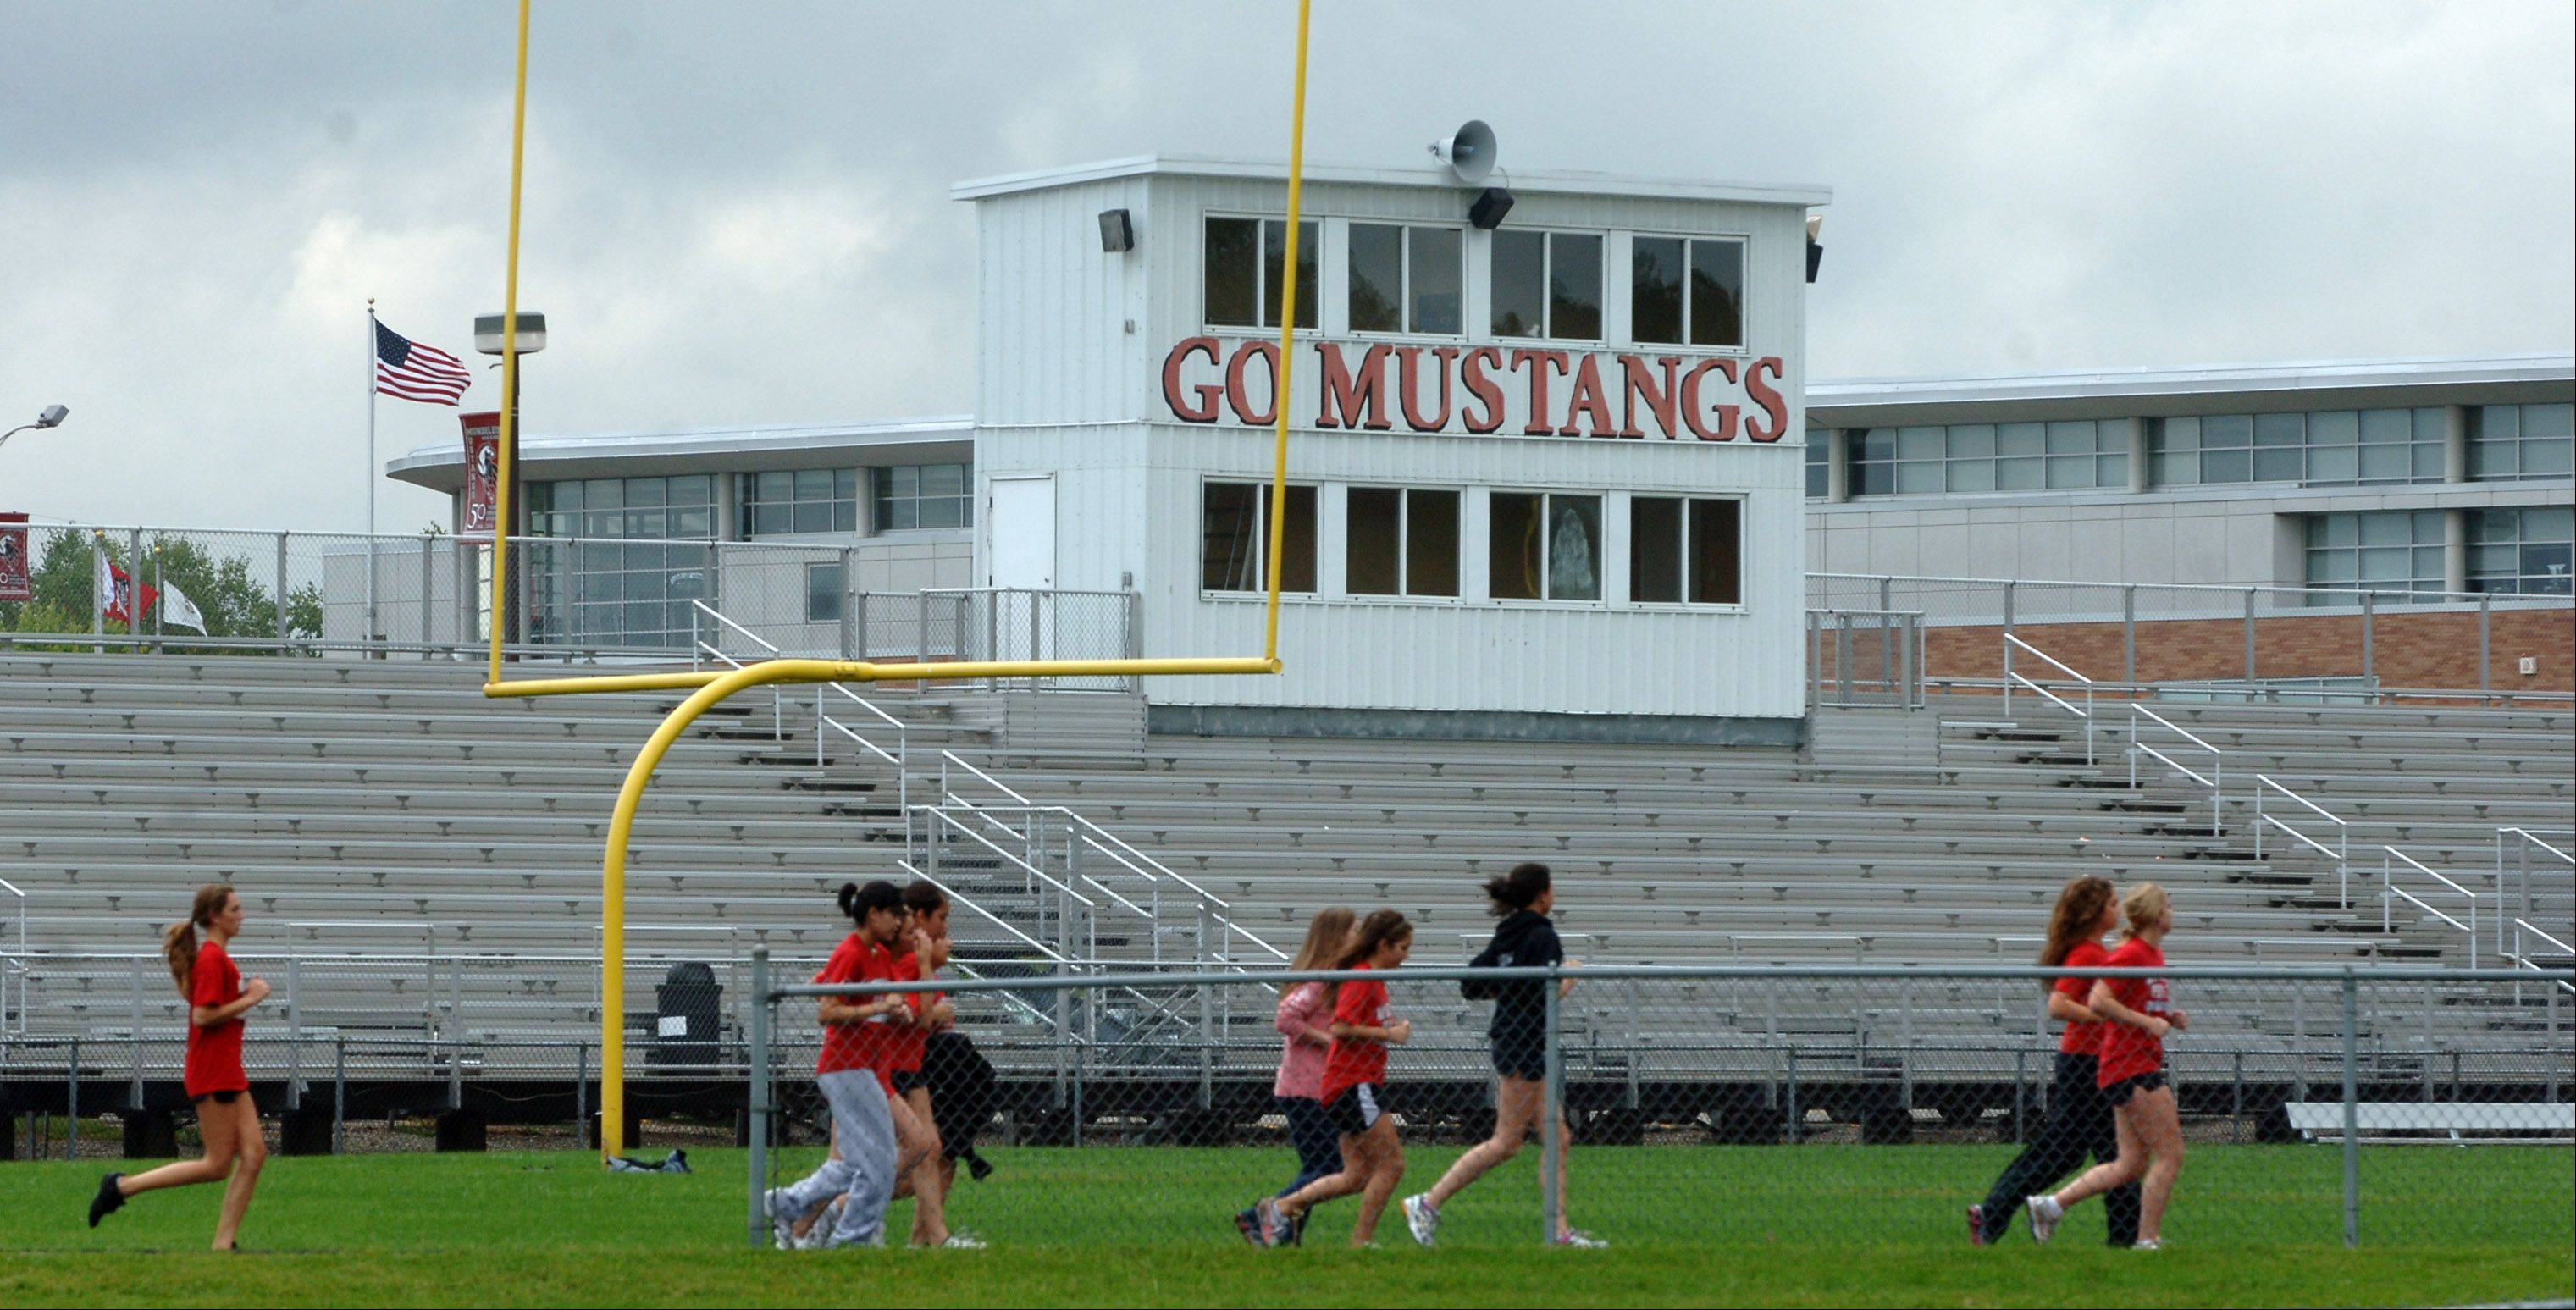 The Mundelein High School District 120 board will choose a manufacturer for an artificial turf football field tonight. The work — along with the construction of a new running track around the field — is expected to cost $1.9 million.